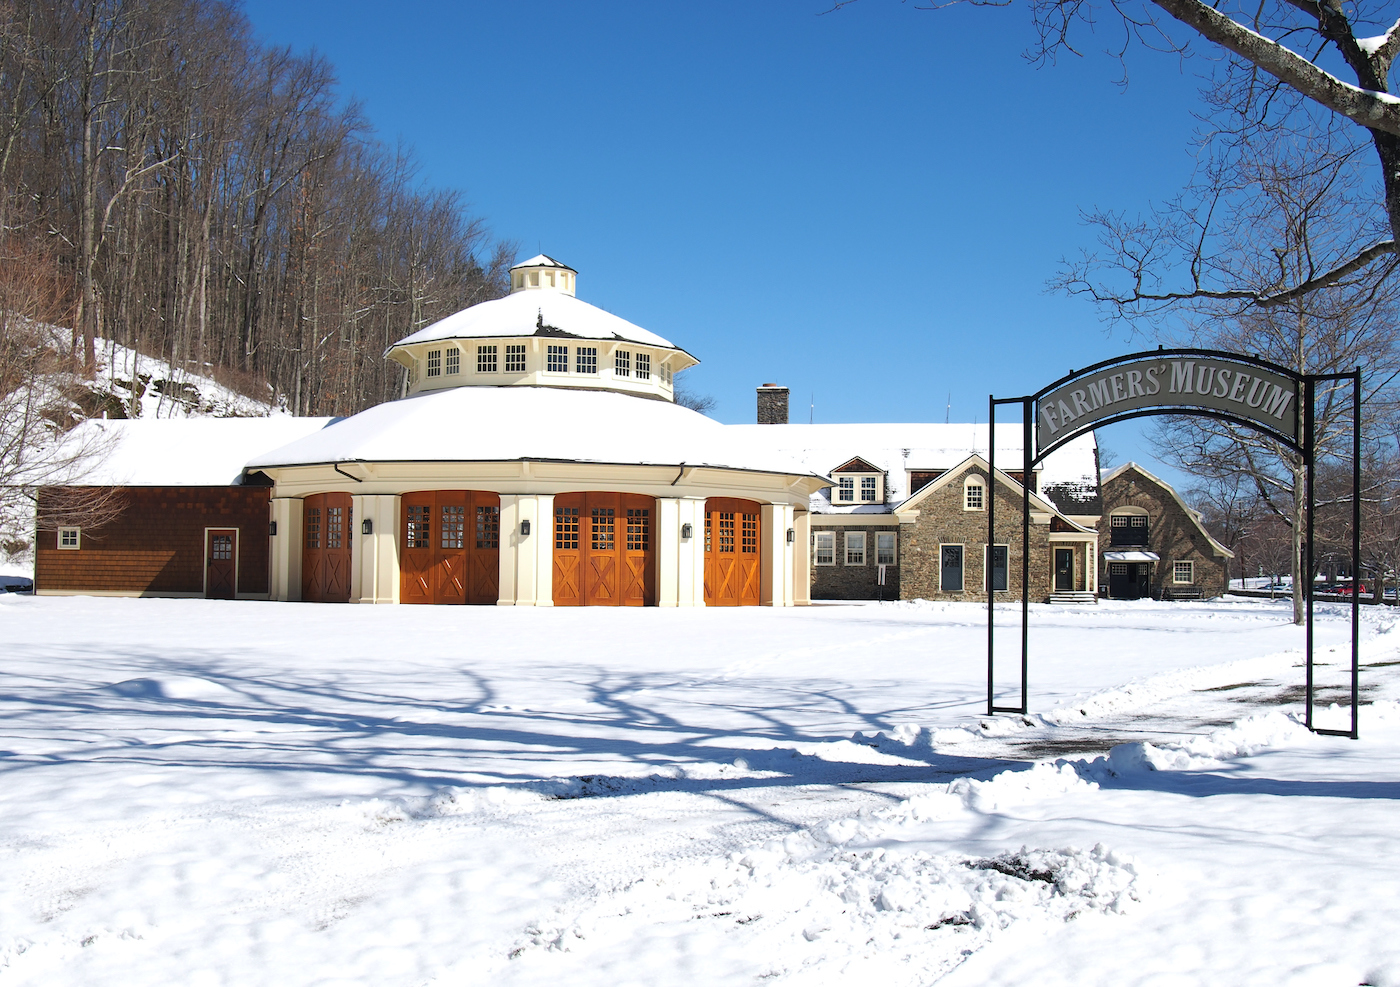 Cooperstown Farmers Museum covered in show and the Empire Carousel.